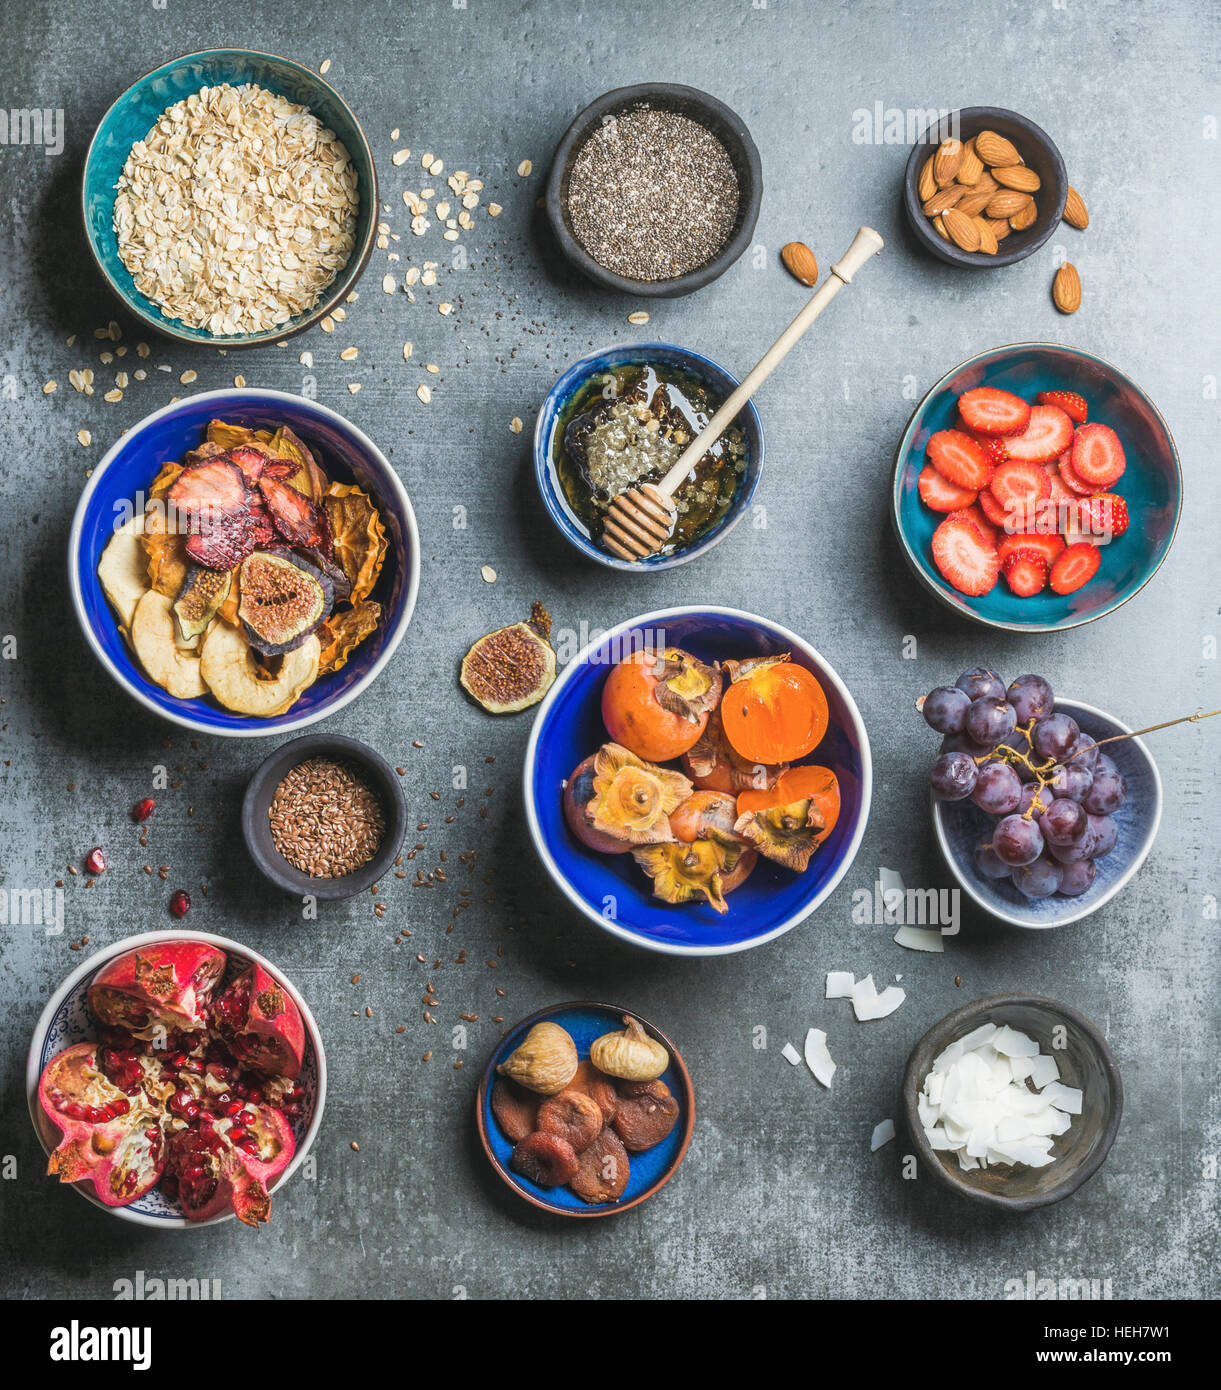 Ingredients for healthy breakfast over grey stone background, top view, square crop. Fresh and dried fruit, chia - Stock Image